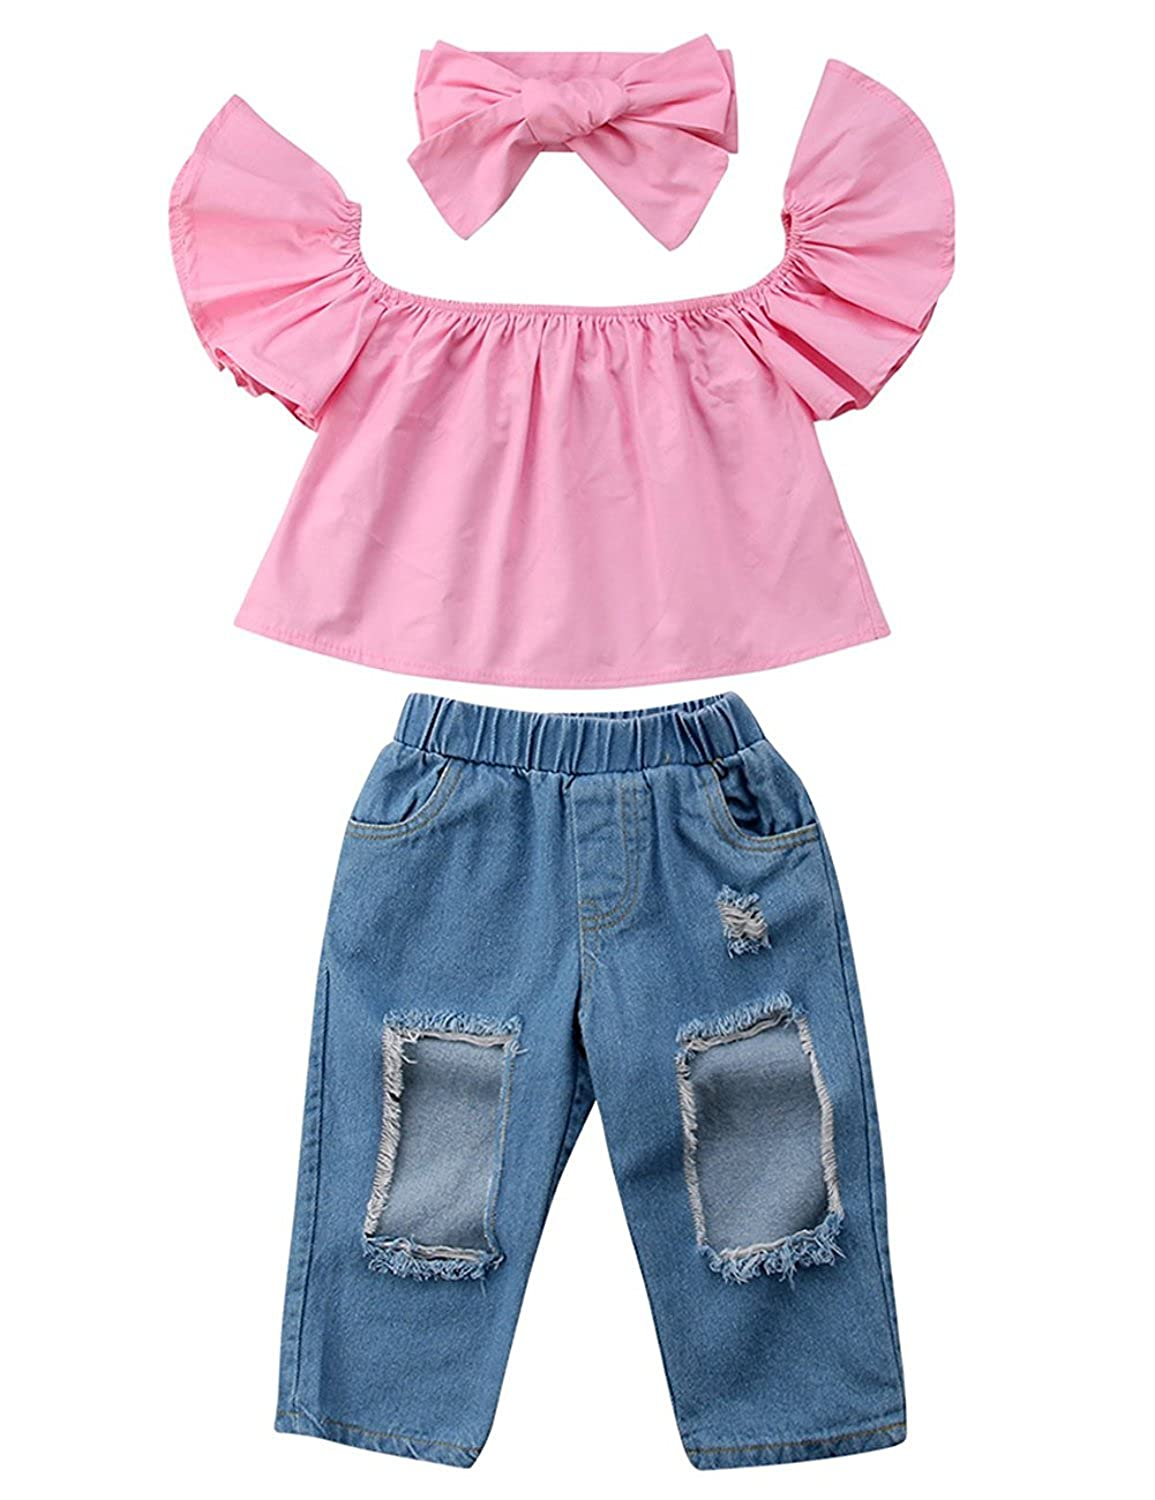 bbd934a1d5aa  Brand   This baby girl outfit was designed by ViWorld